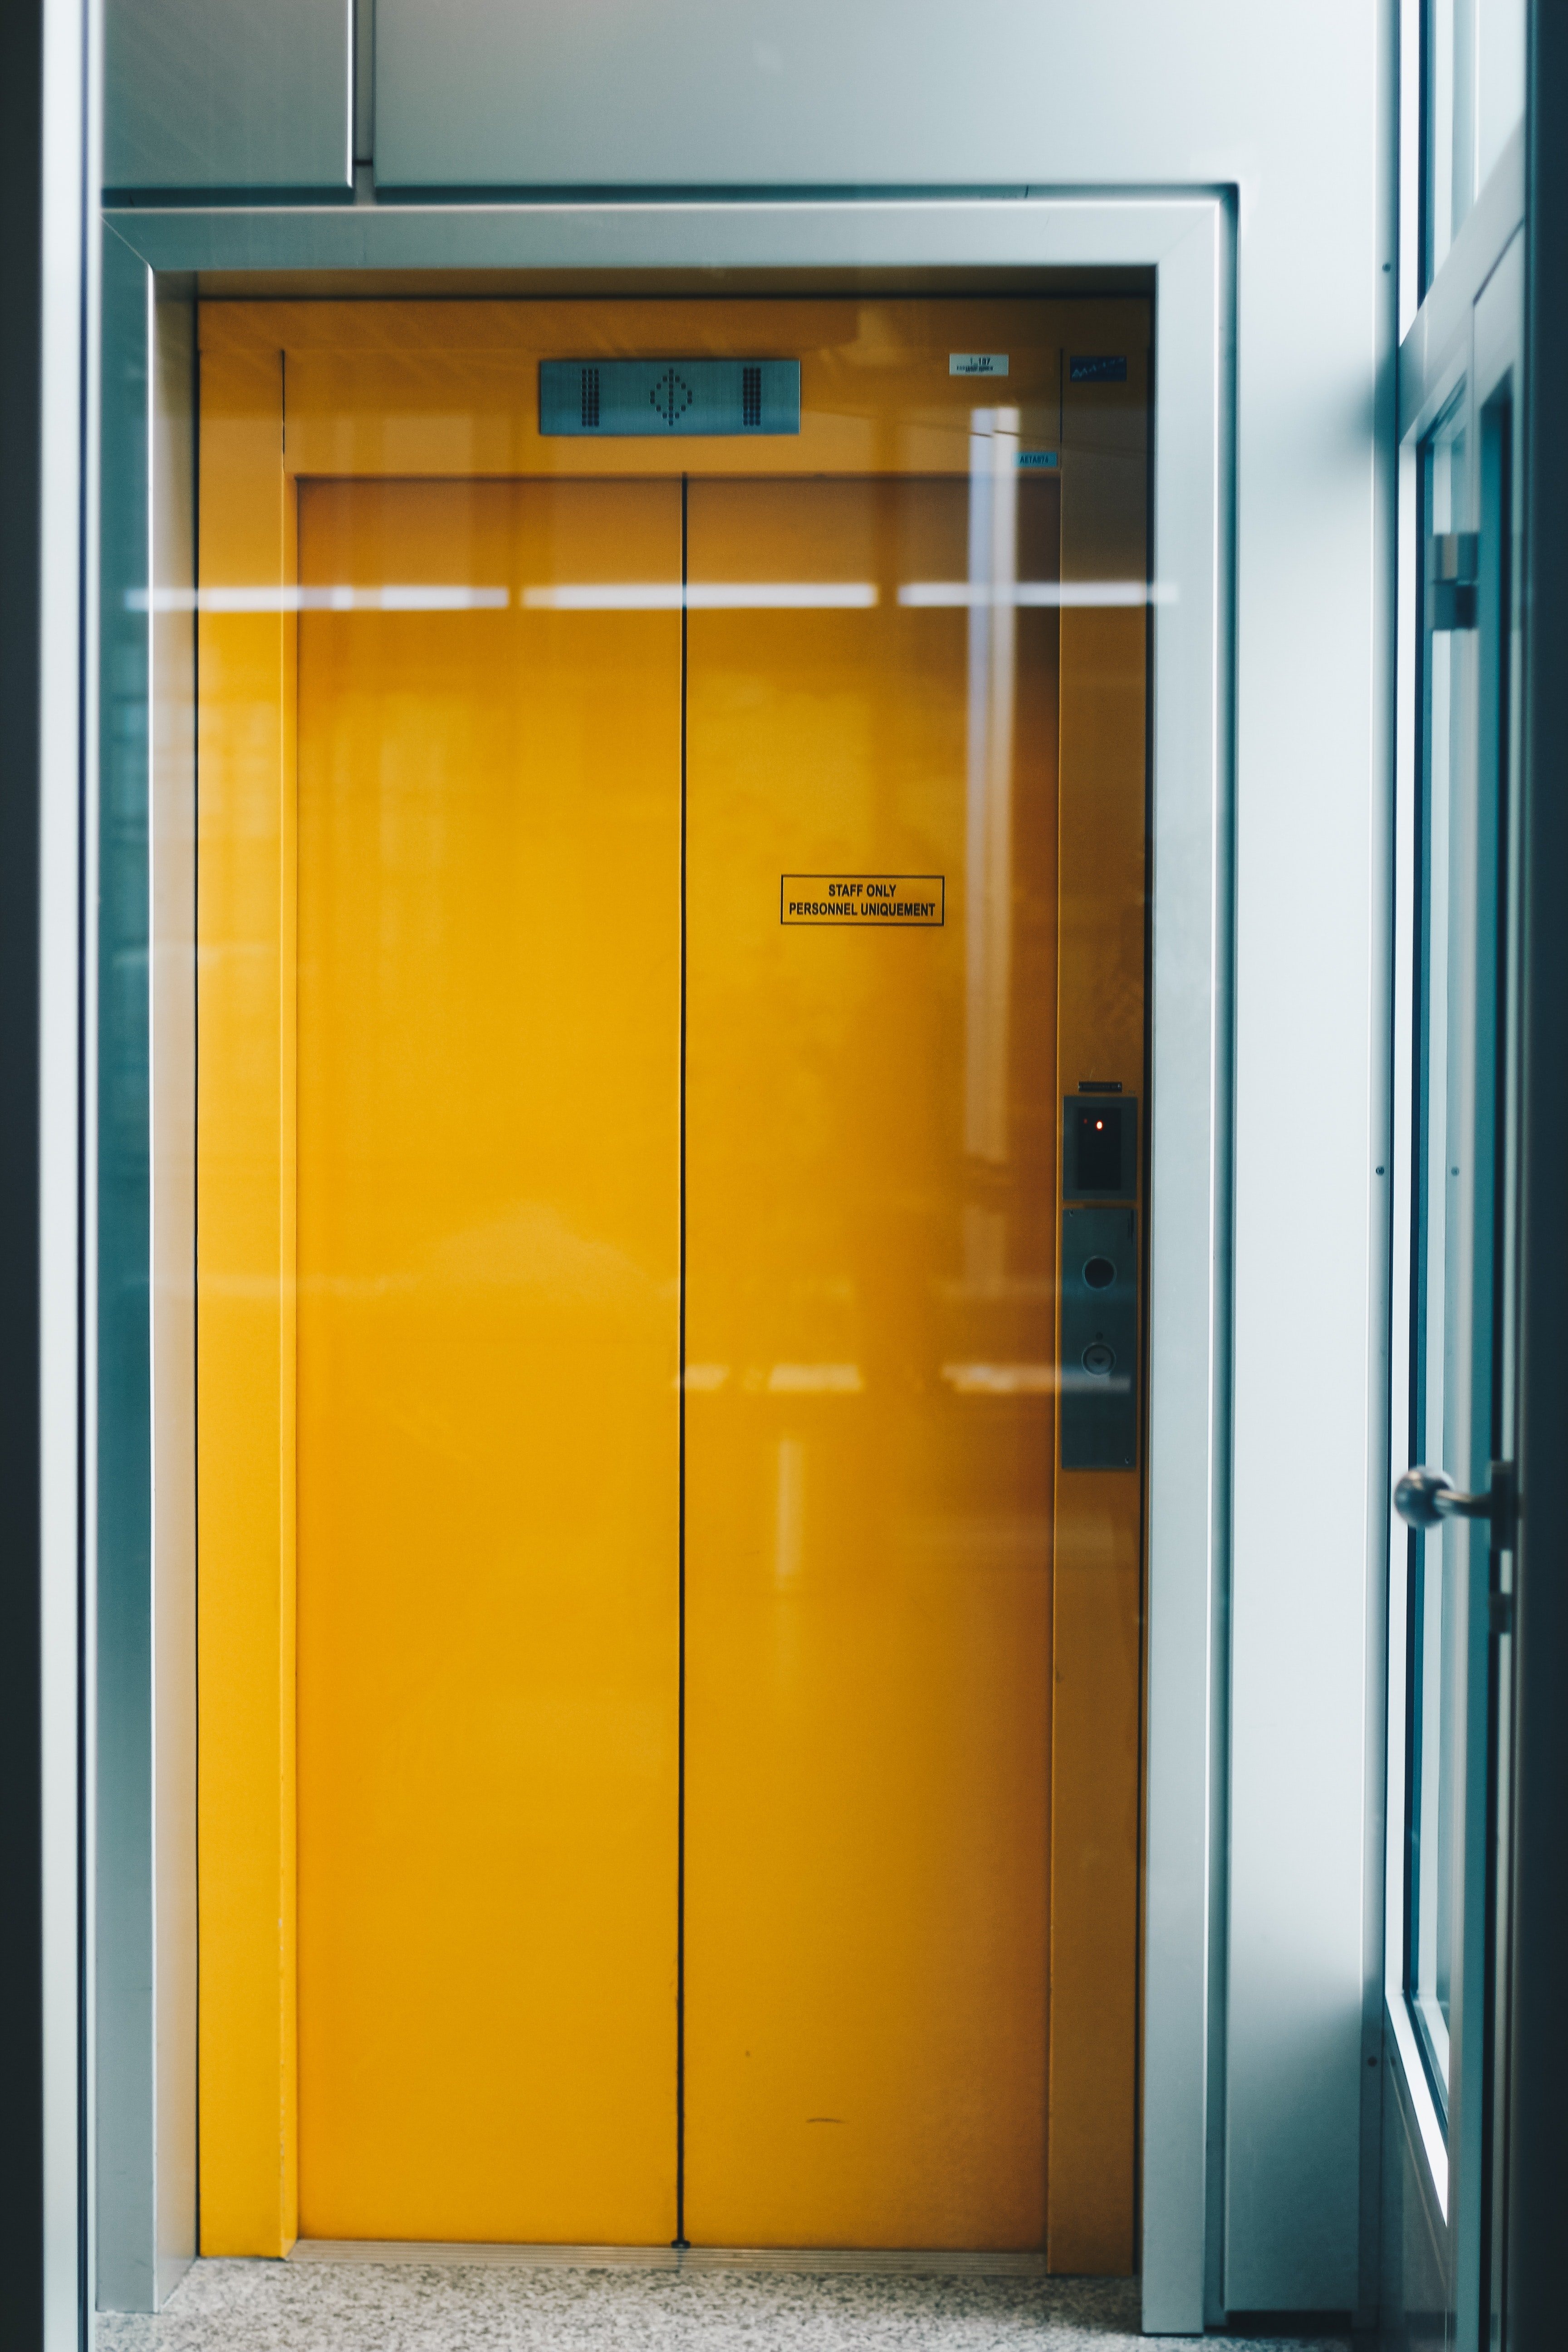 The paramedic rushed to the elevator and saved Evelyn   Photo: Pexels